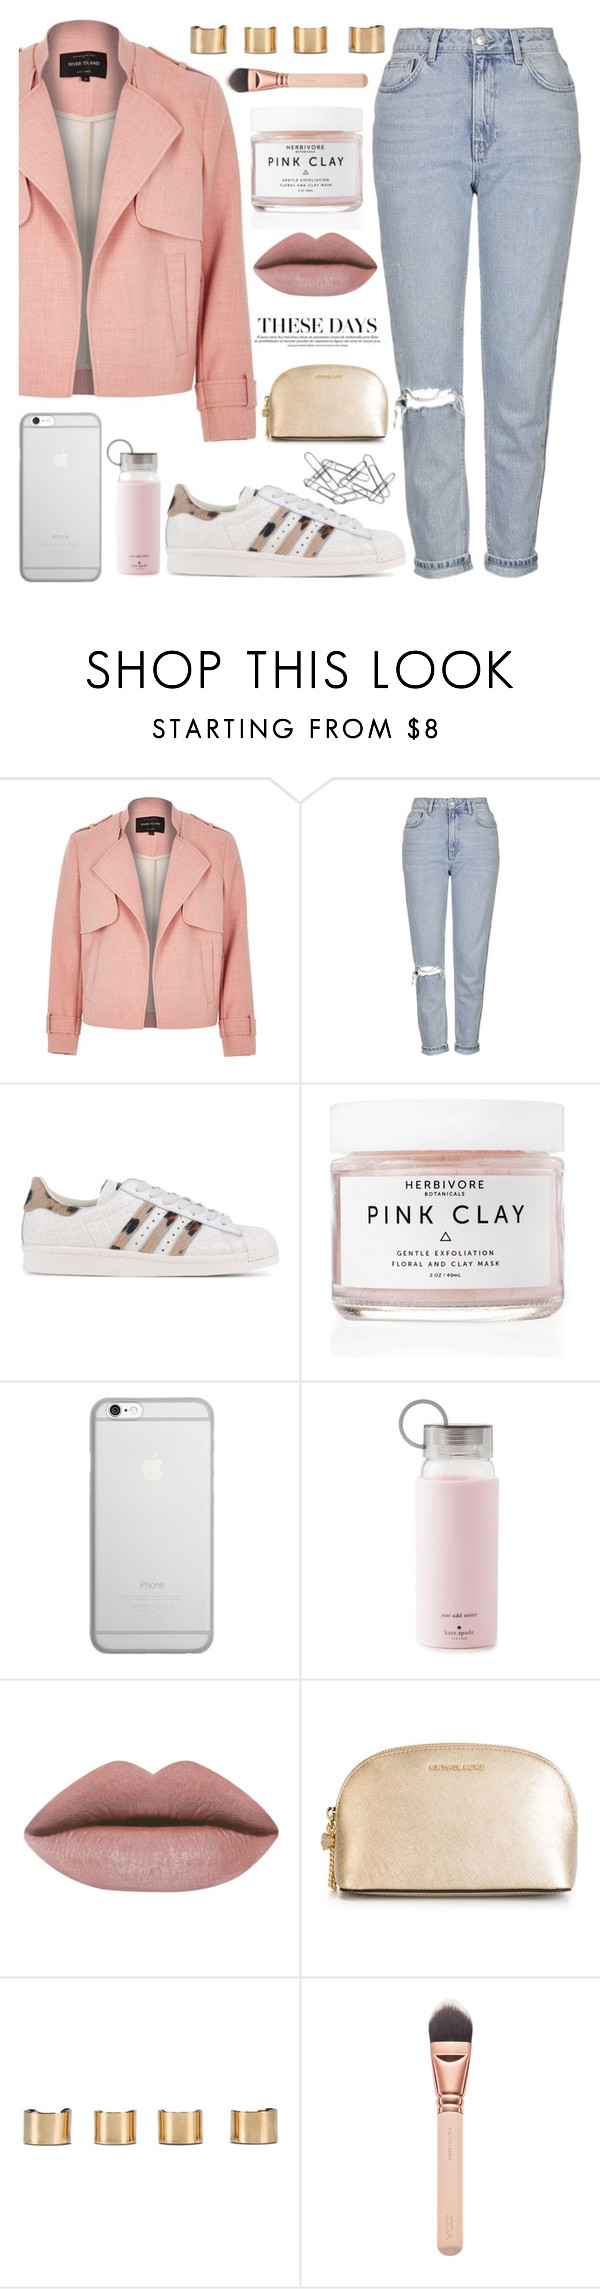 """""""deep deep down,, you have feelings for me..."""" by sweet-jolly-looks ❤ liked on Polyvore featuring River Island, Topshop, adidas Originals, Herbivore Botanicals, Native Union, Kate Spade, MICHAEL Michael Kors, Maison Margiela, Home Decorators Collection and SimpleOutfits"""